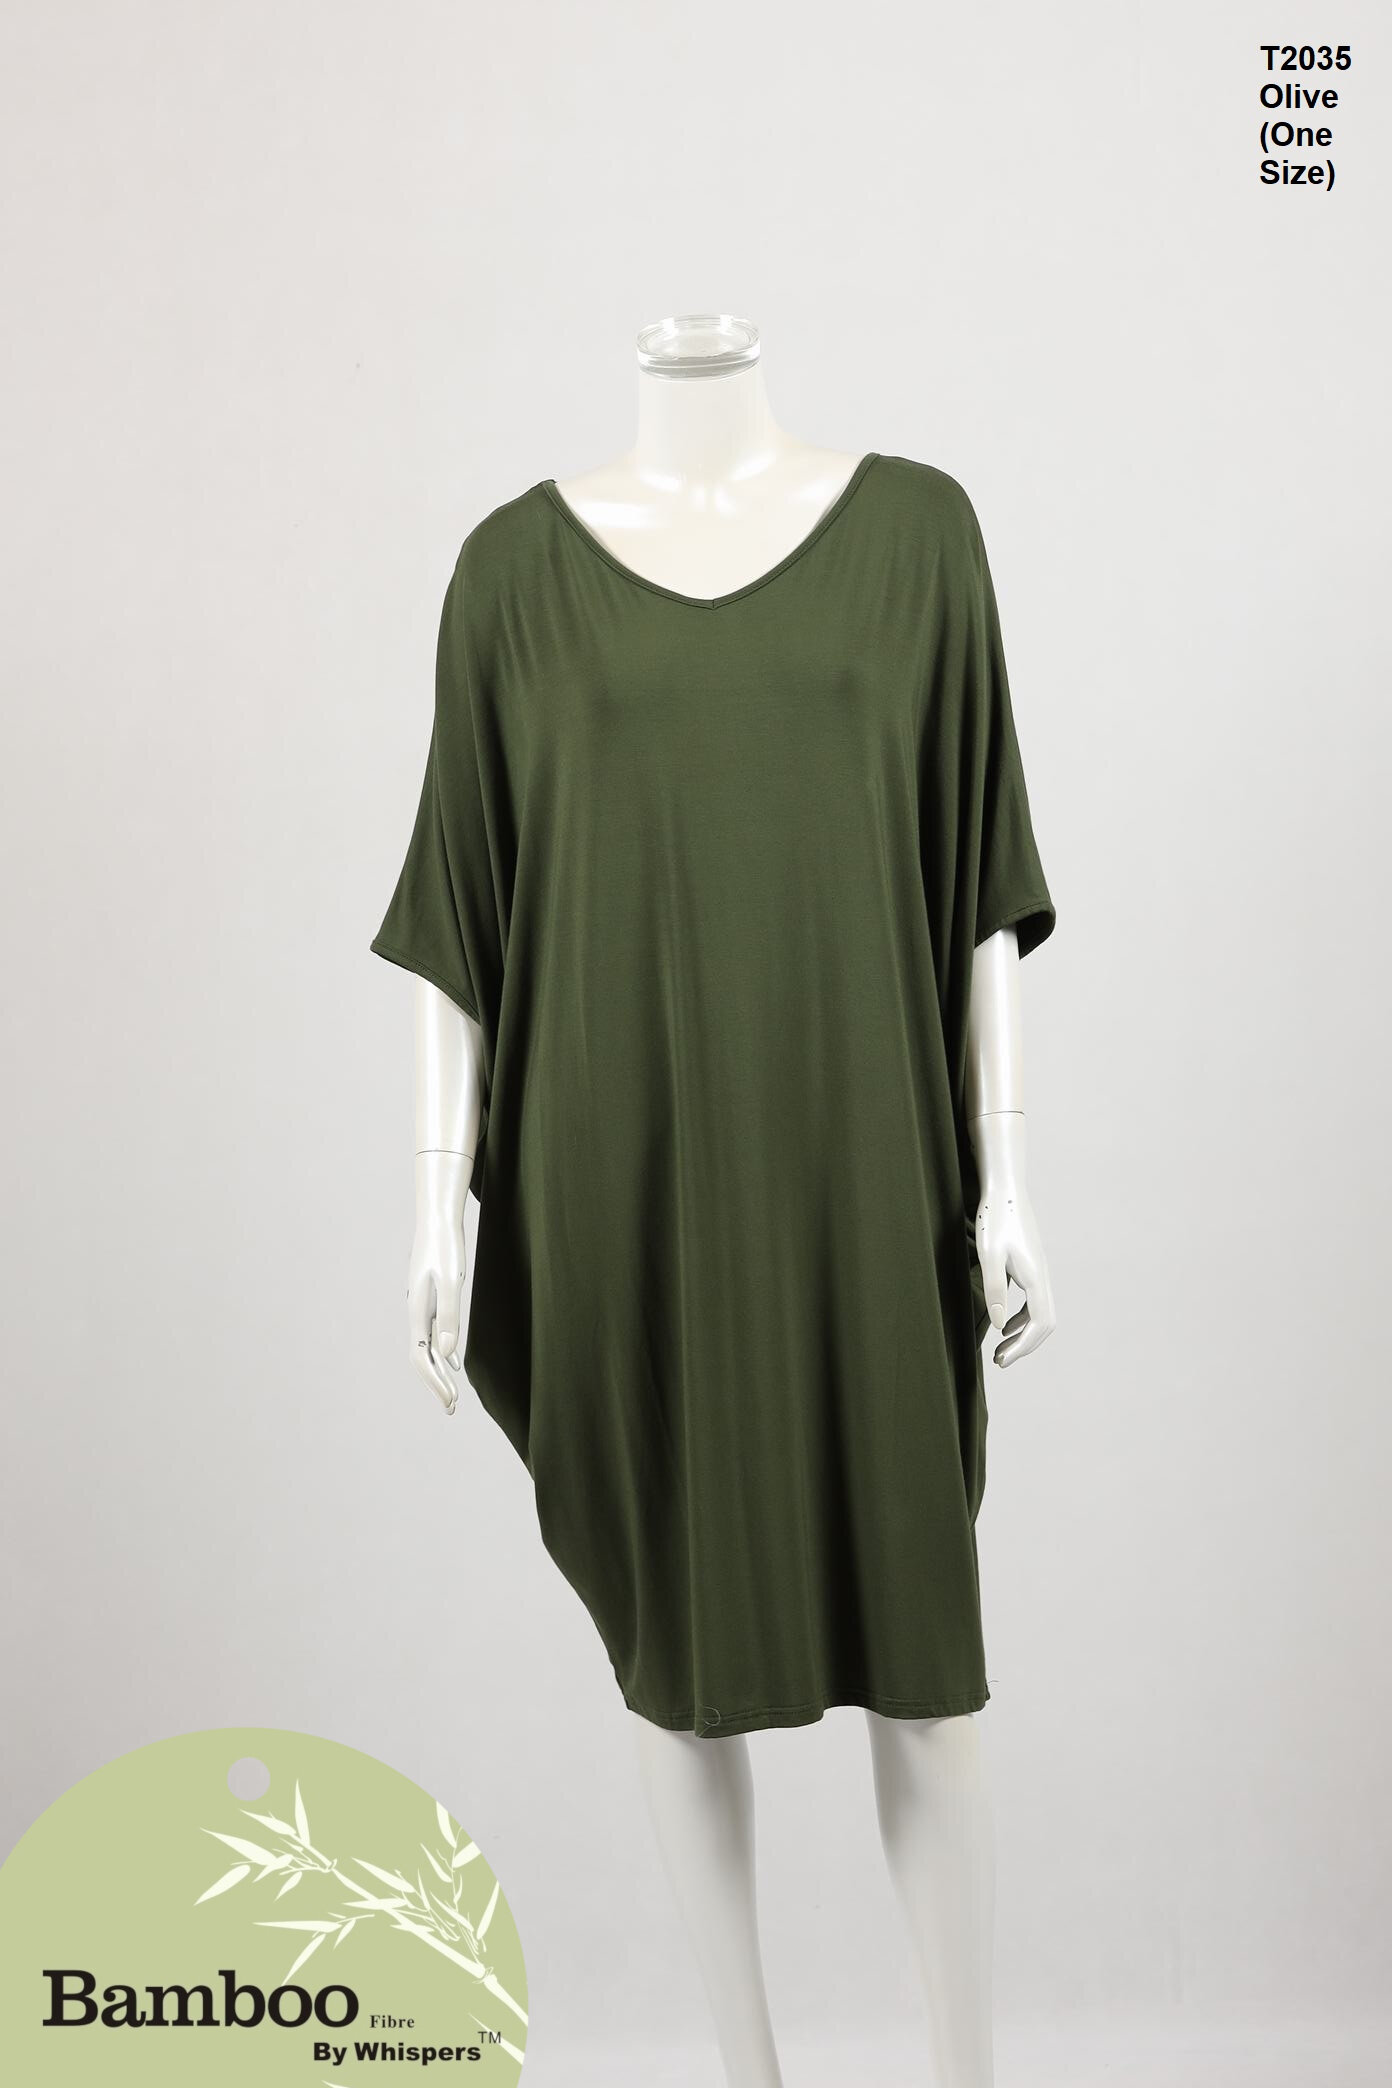 T2035-One Size-Olive.JPG